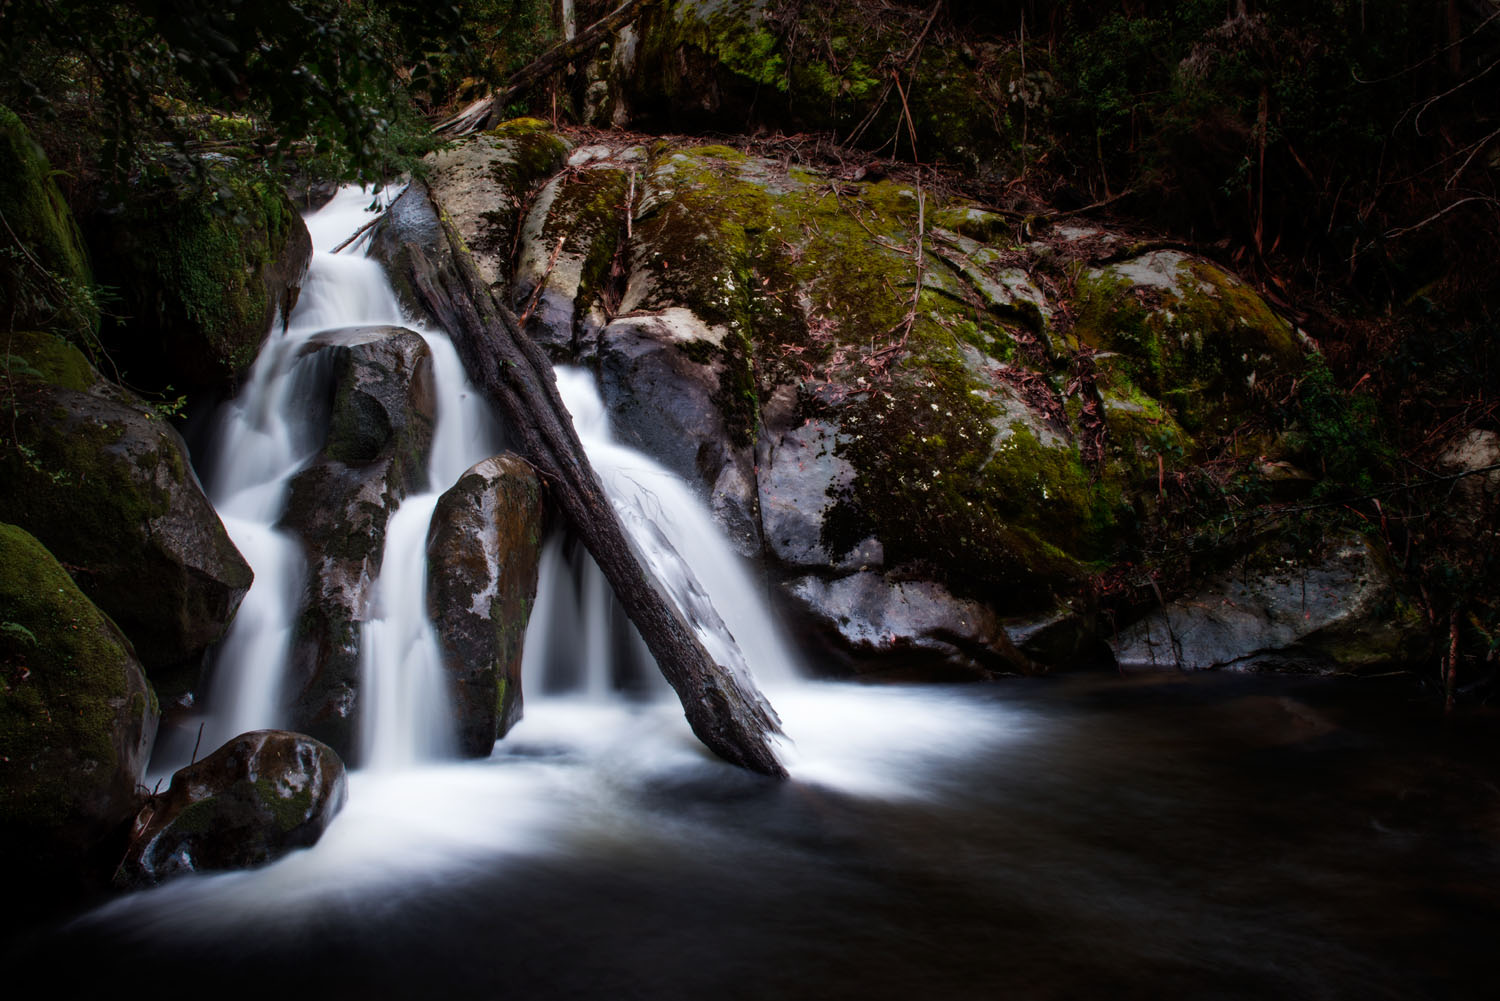 Taggerty Cascade Falls near Marysville. It is in the northerly direction and takes between one and half to two hours to get to.